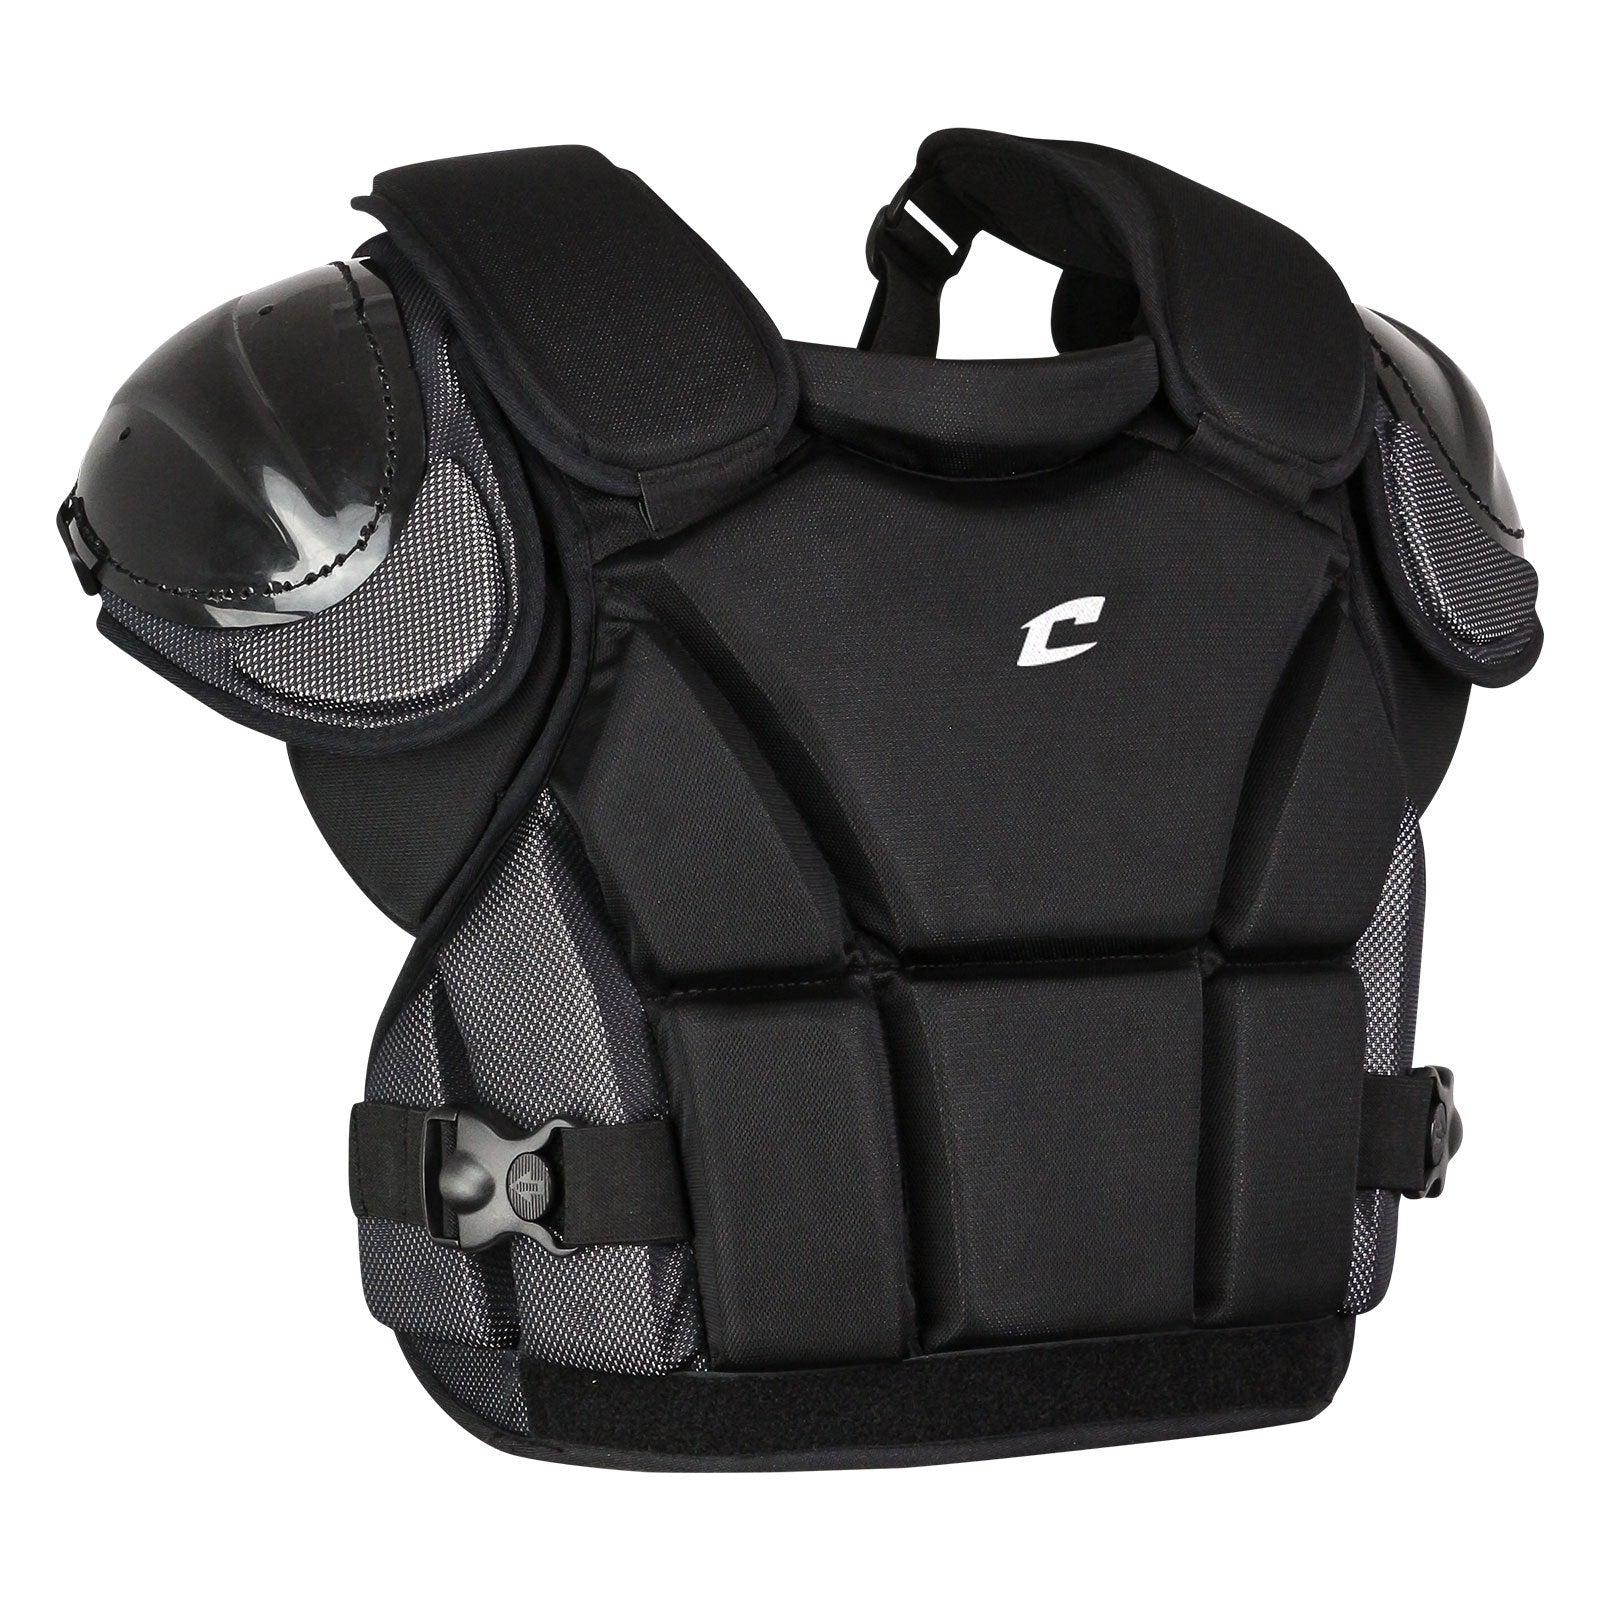 Champro Pro-Plus Plate Chest Protector